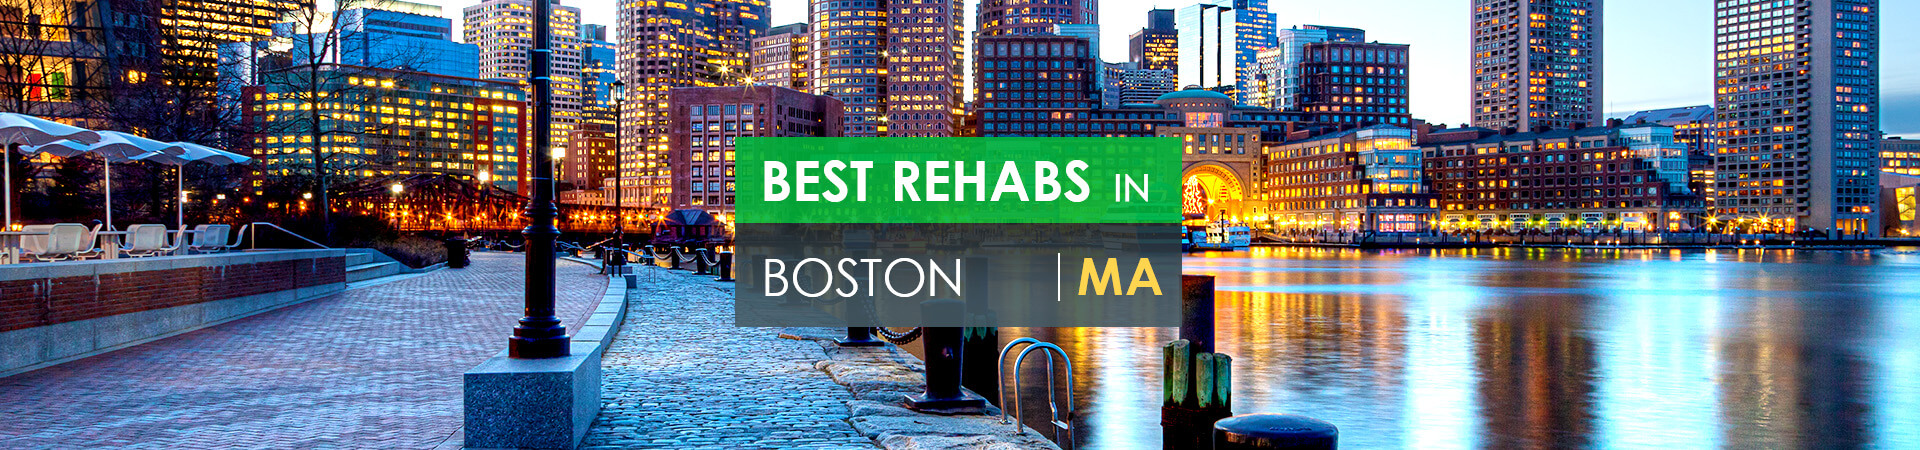 Best rehabs in Boston, MA